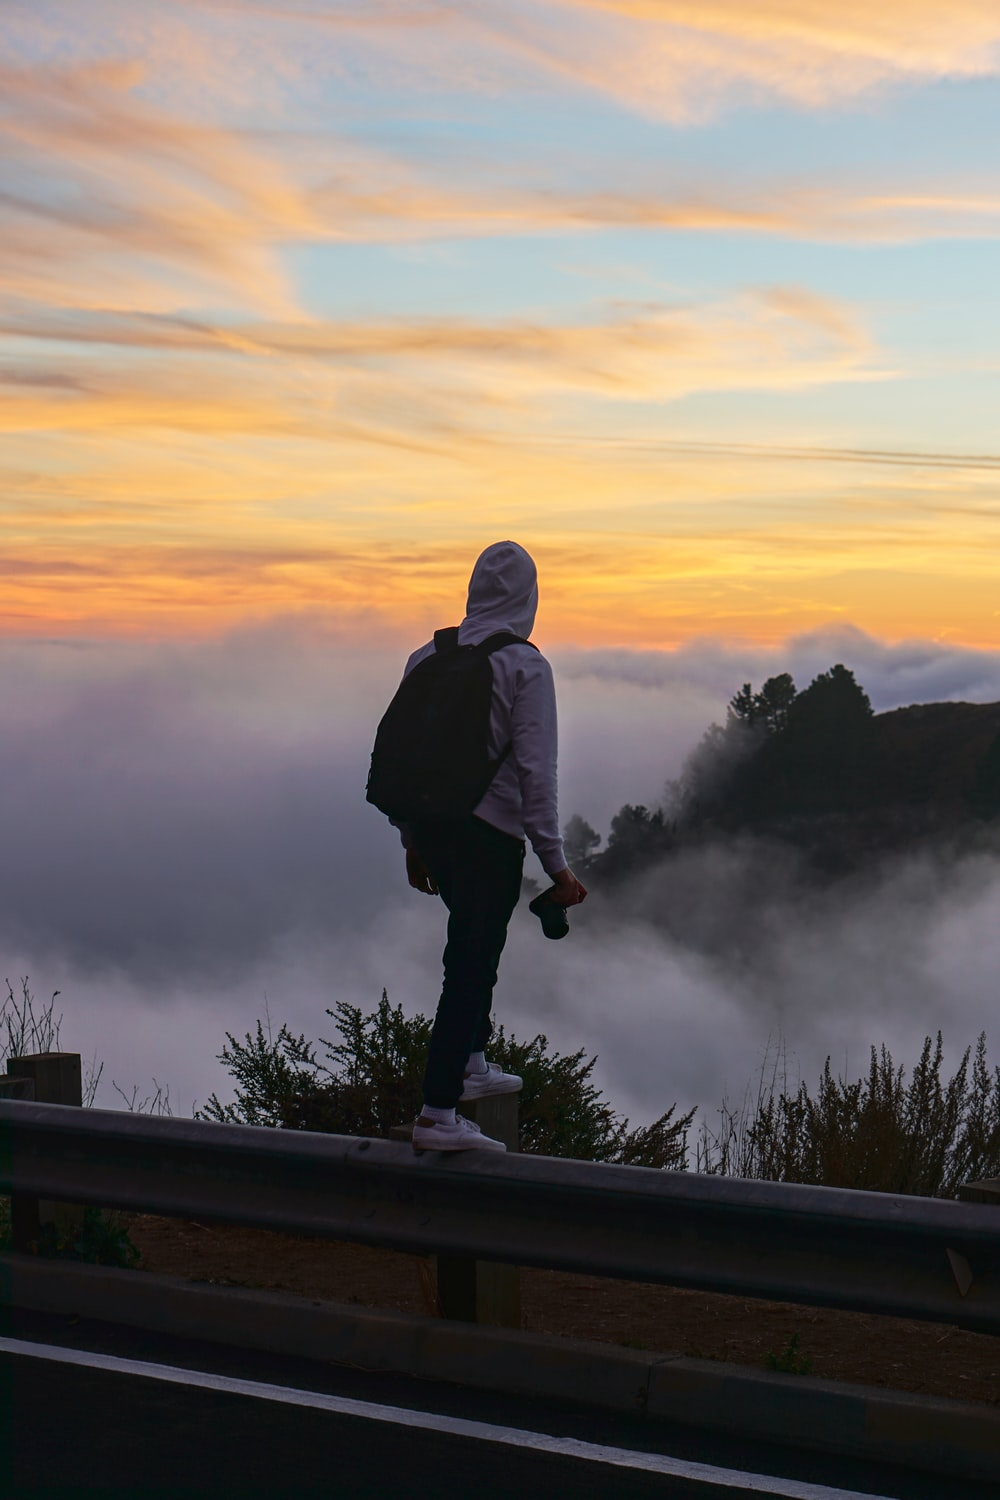 man standing on a fence overlooking sea of clouds